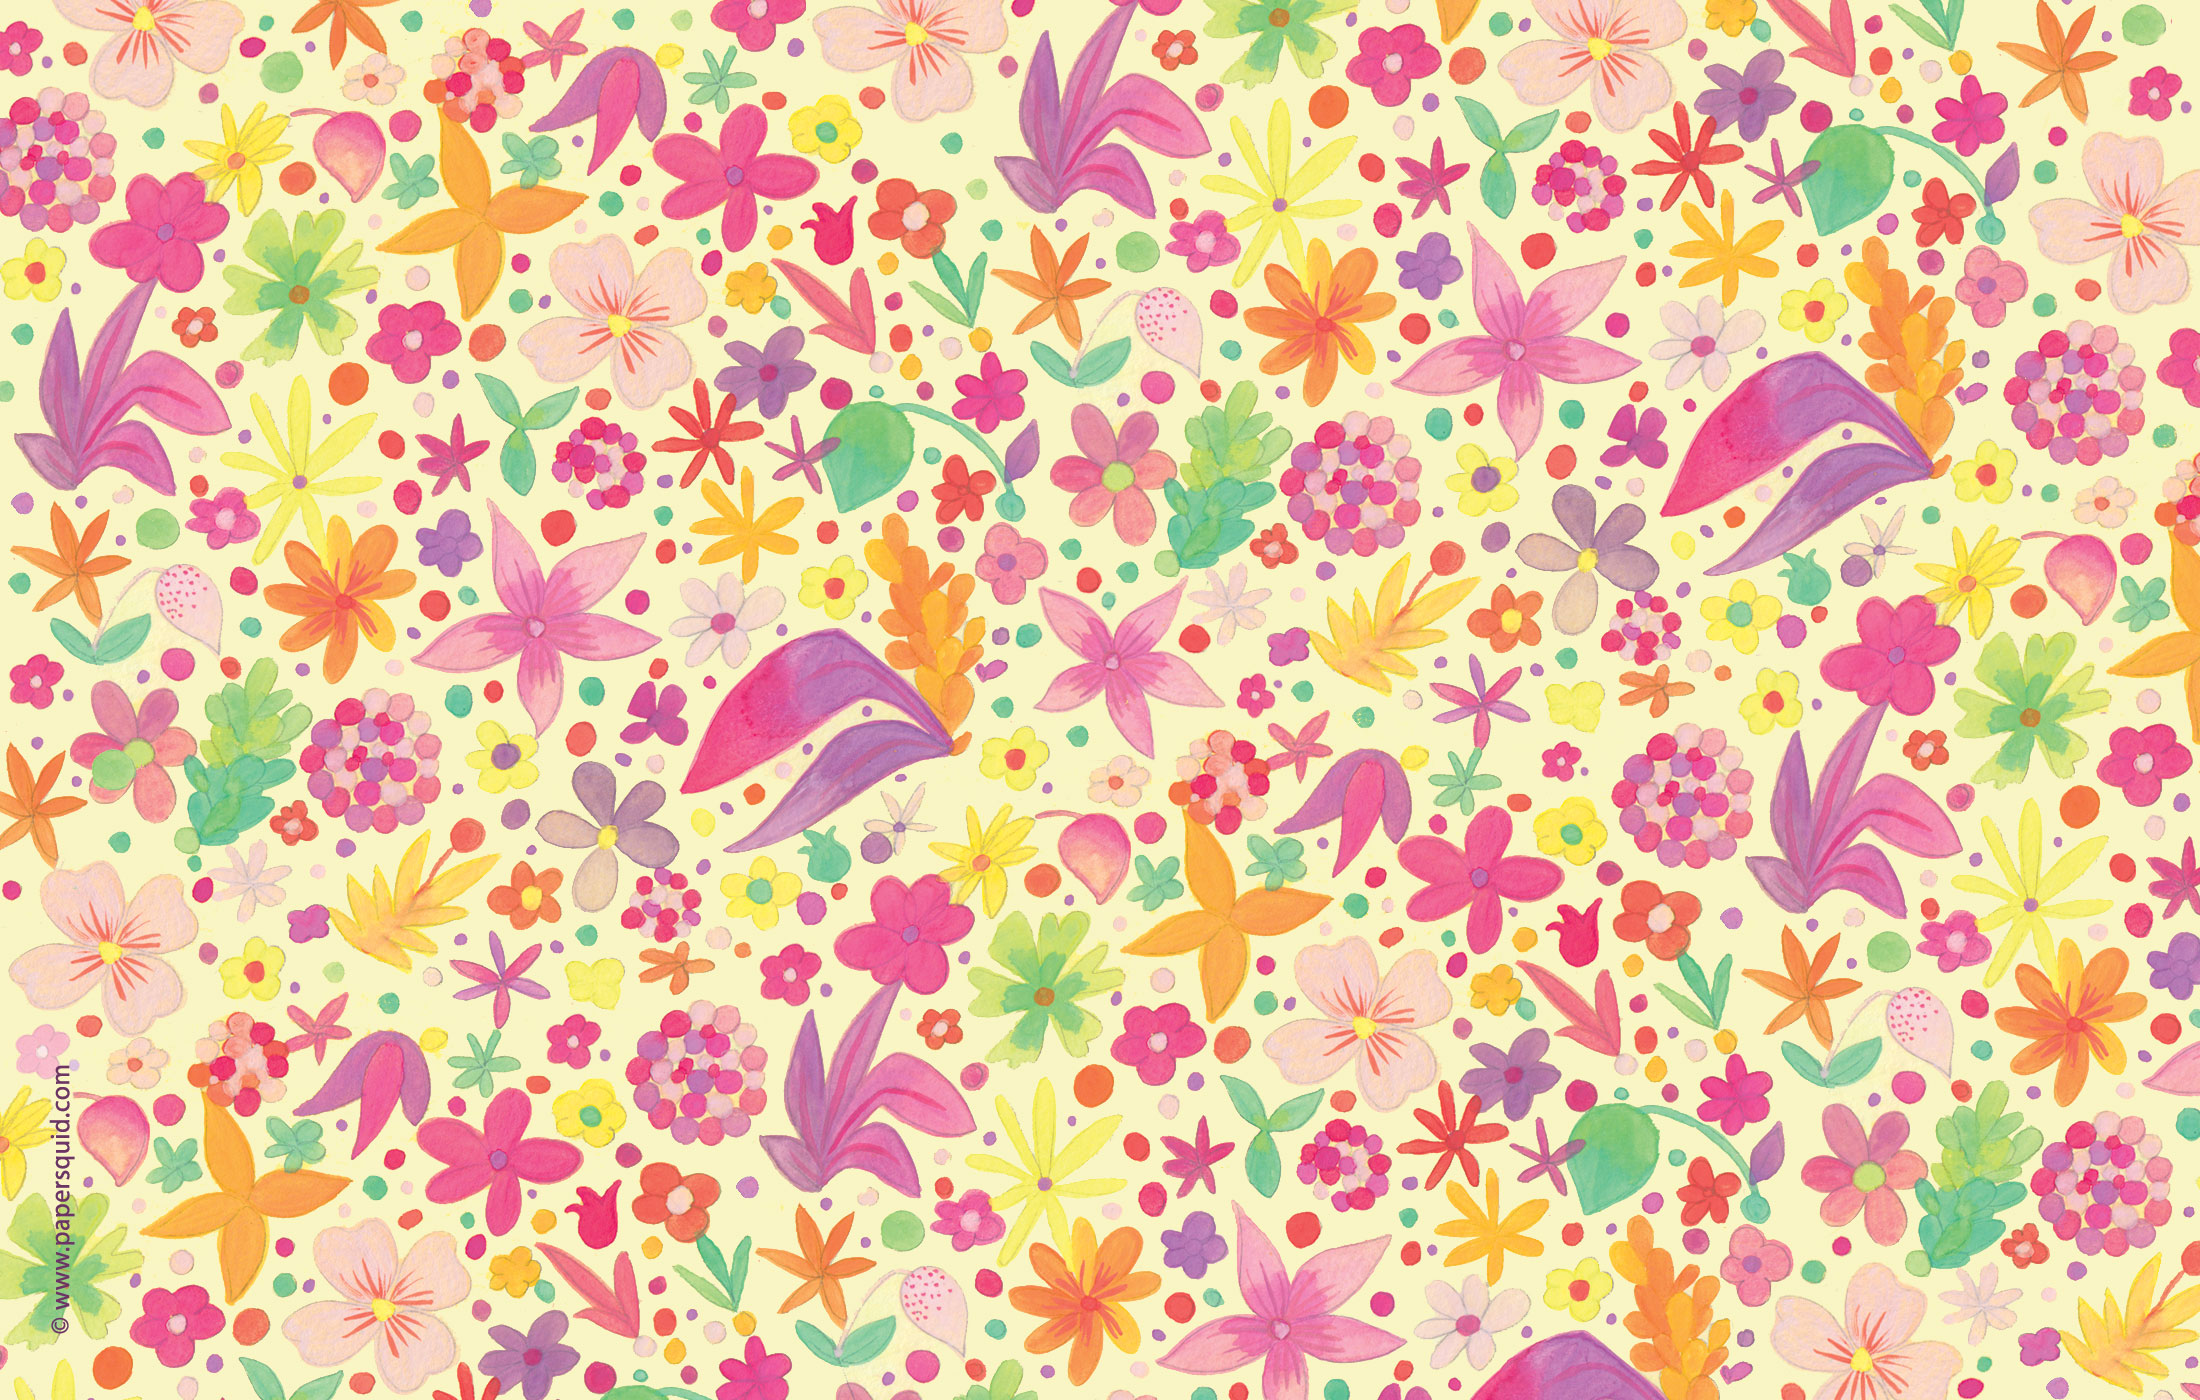 Paper Squid Junes Golden Floral Desktop Wallpaper 2200x1400